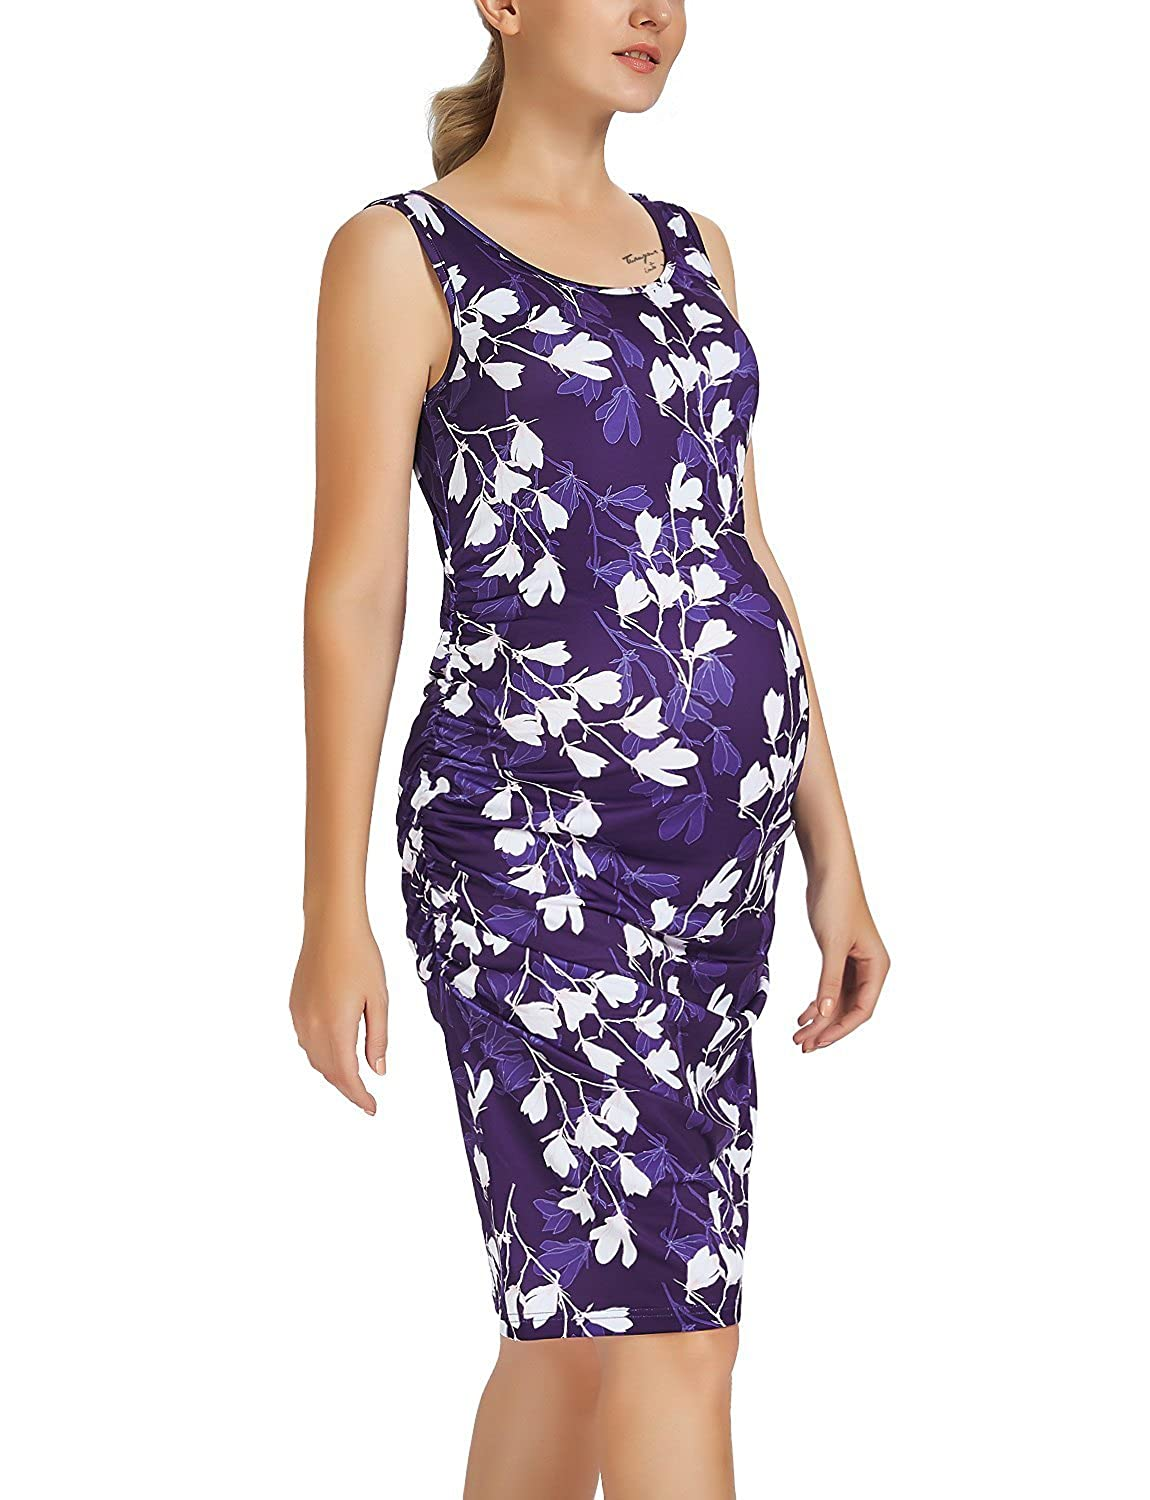 Purple With White Flower Maternity Tank Dress Ruched Sleeveless Mama Dress Pregnancy Baby Shower Dress